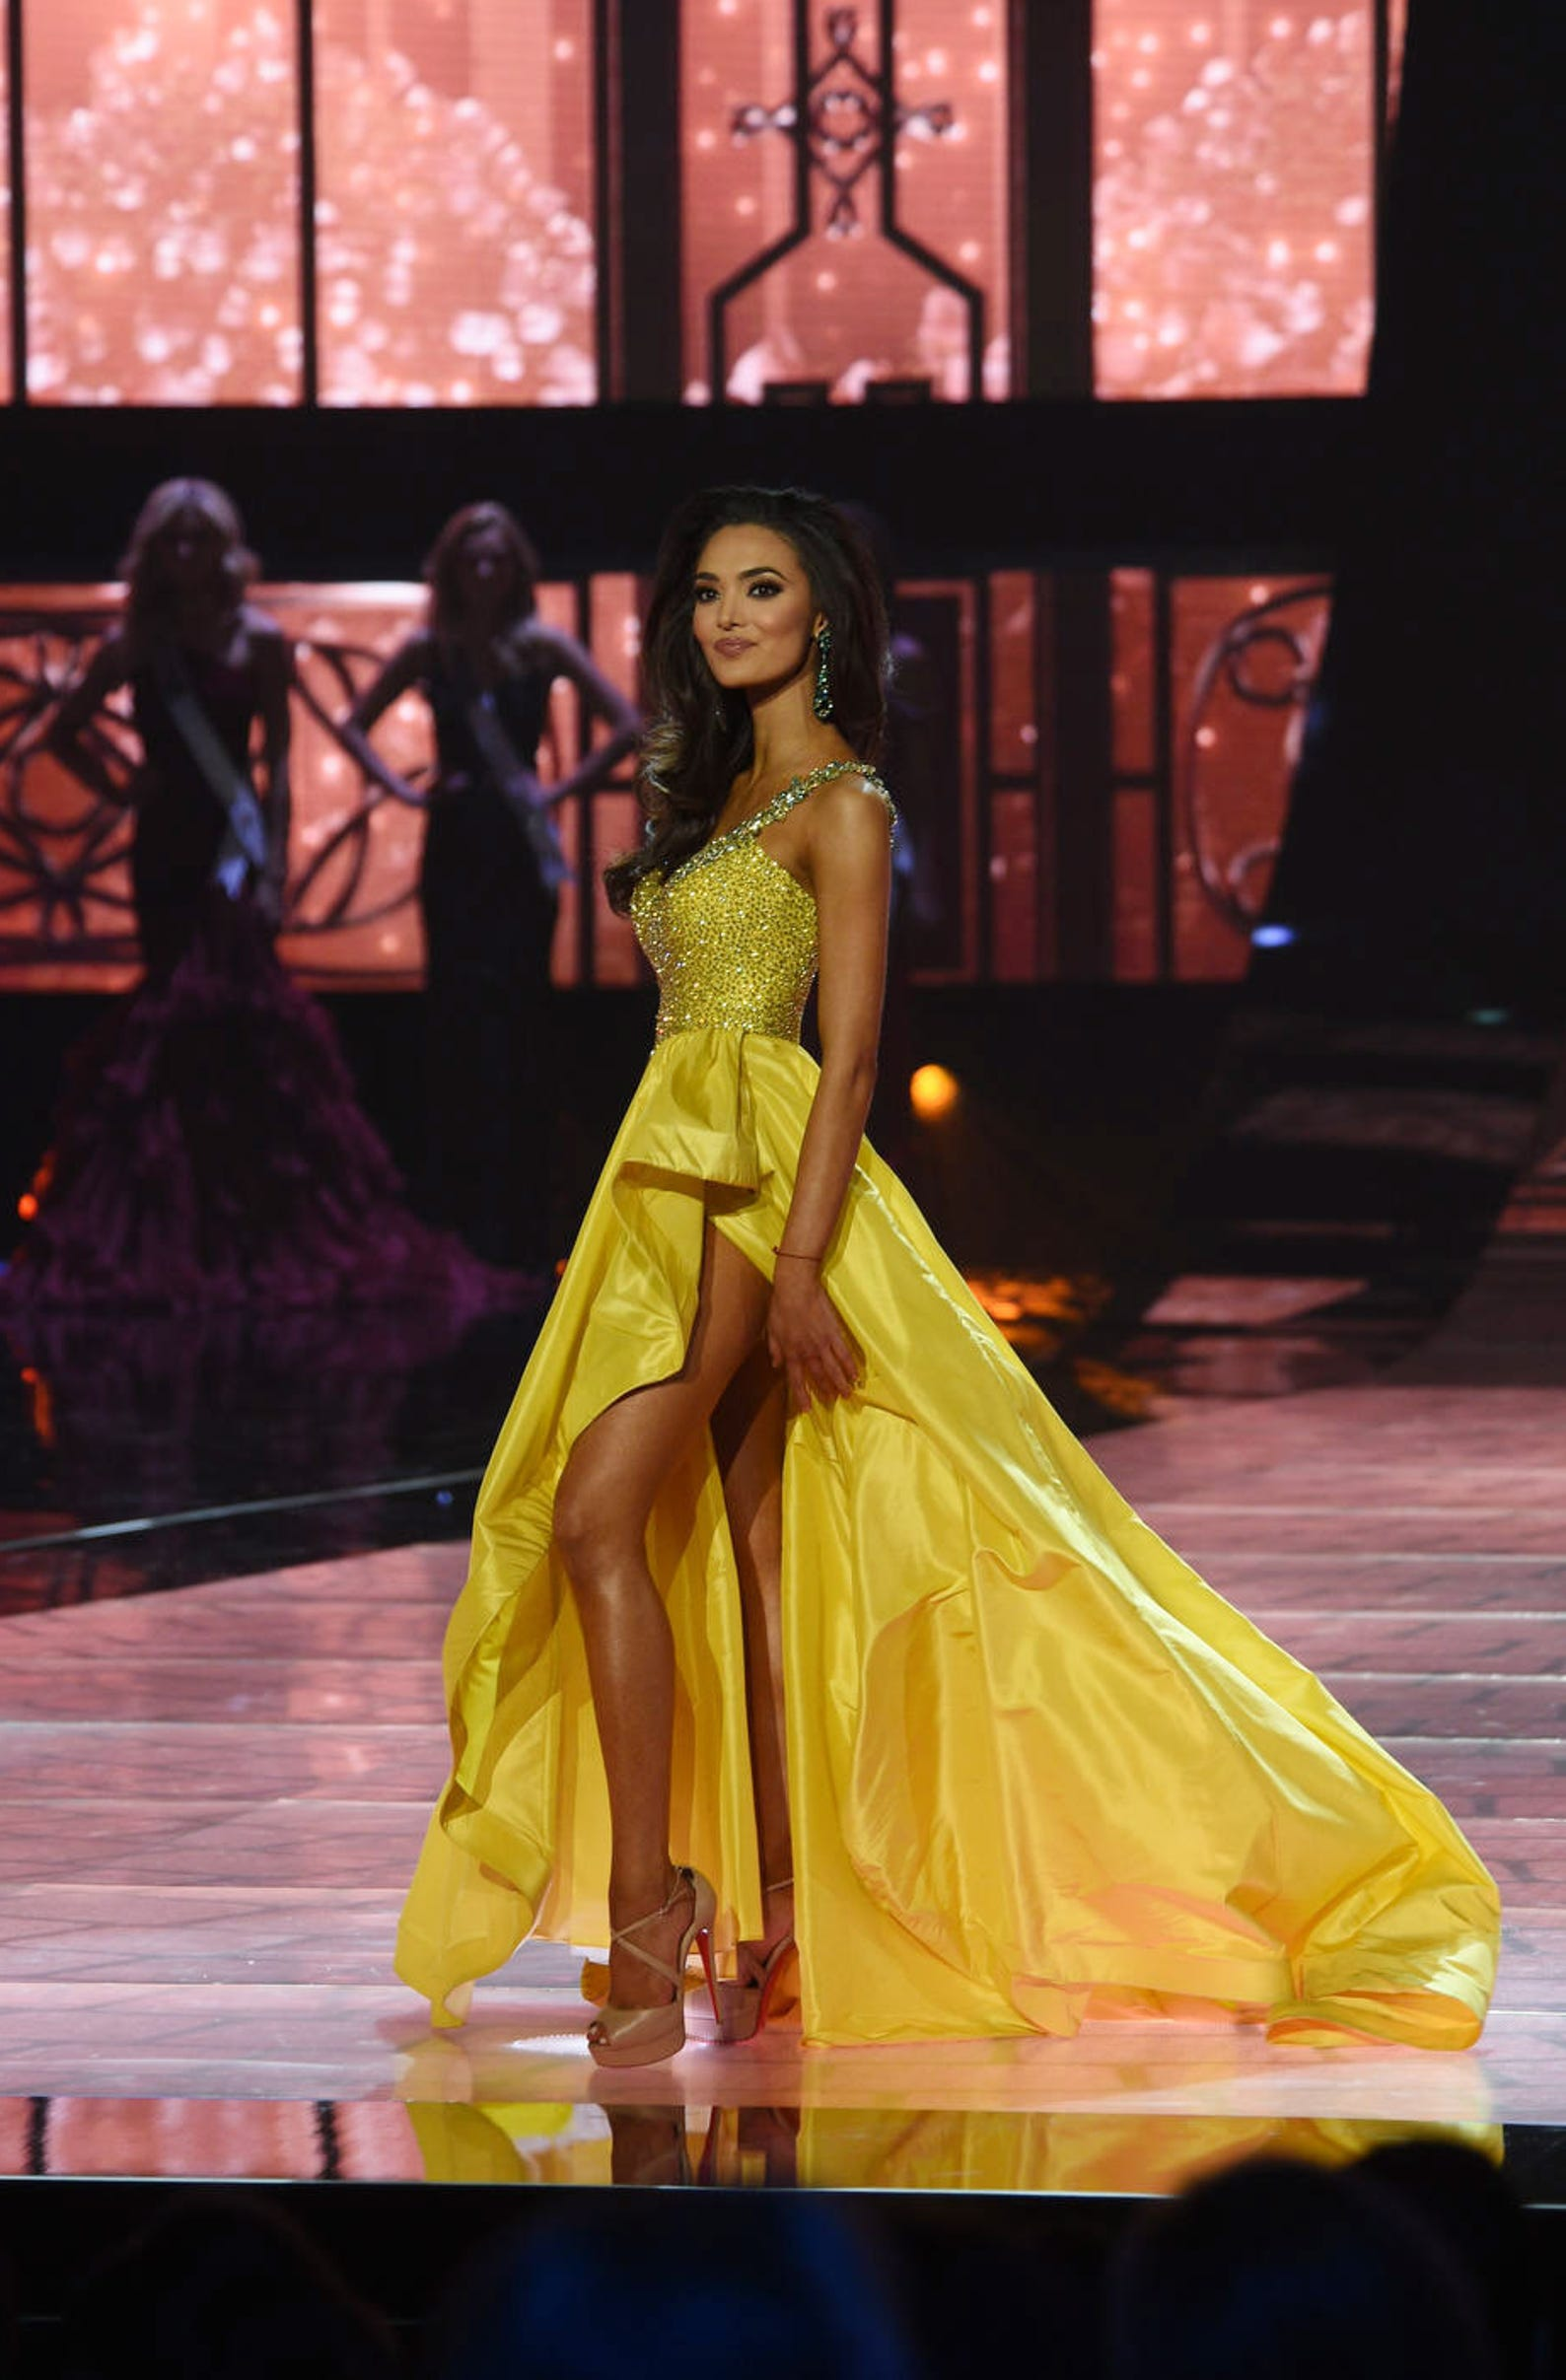 Miss New Mexico Alejandra Gonzalez competes during Miss USA 2019.